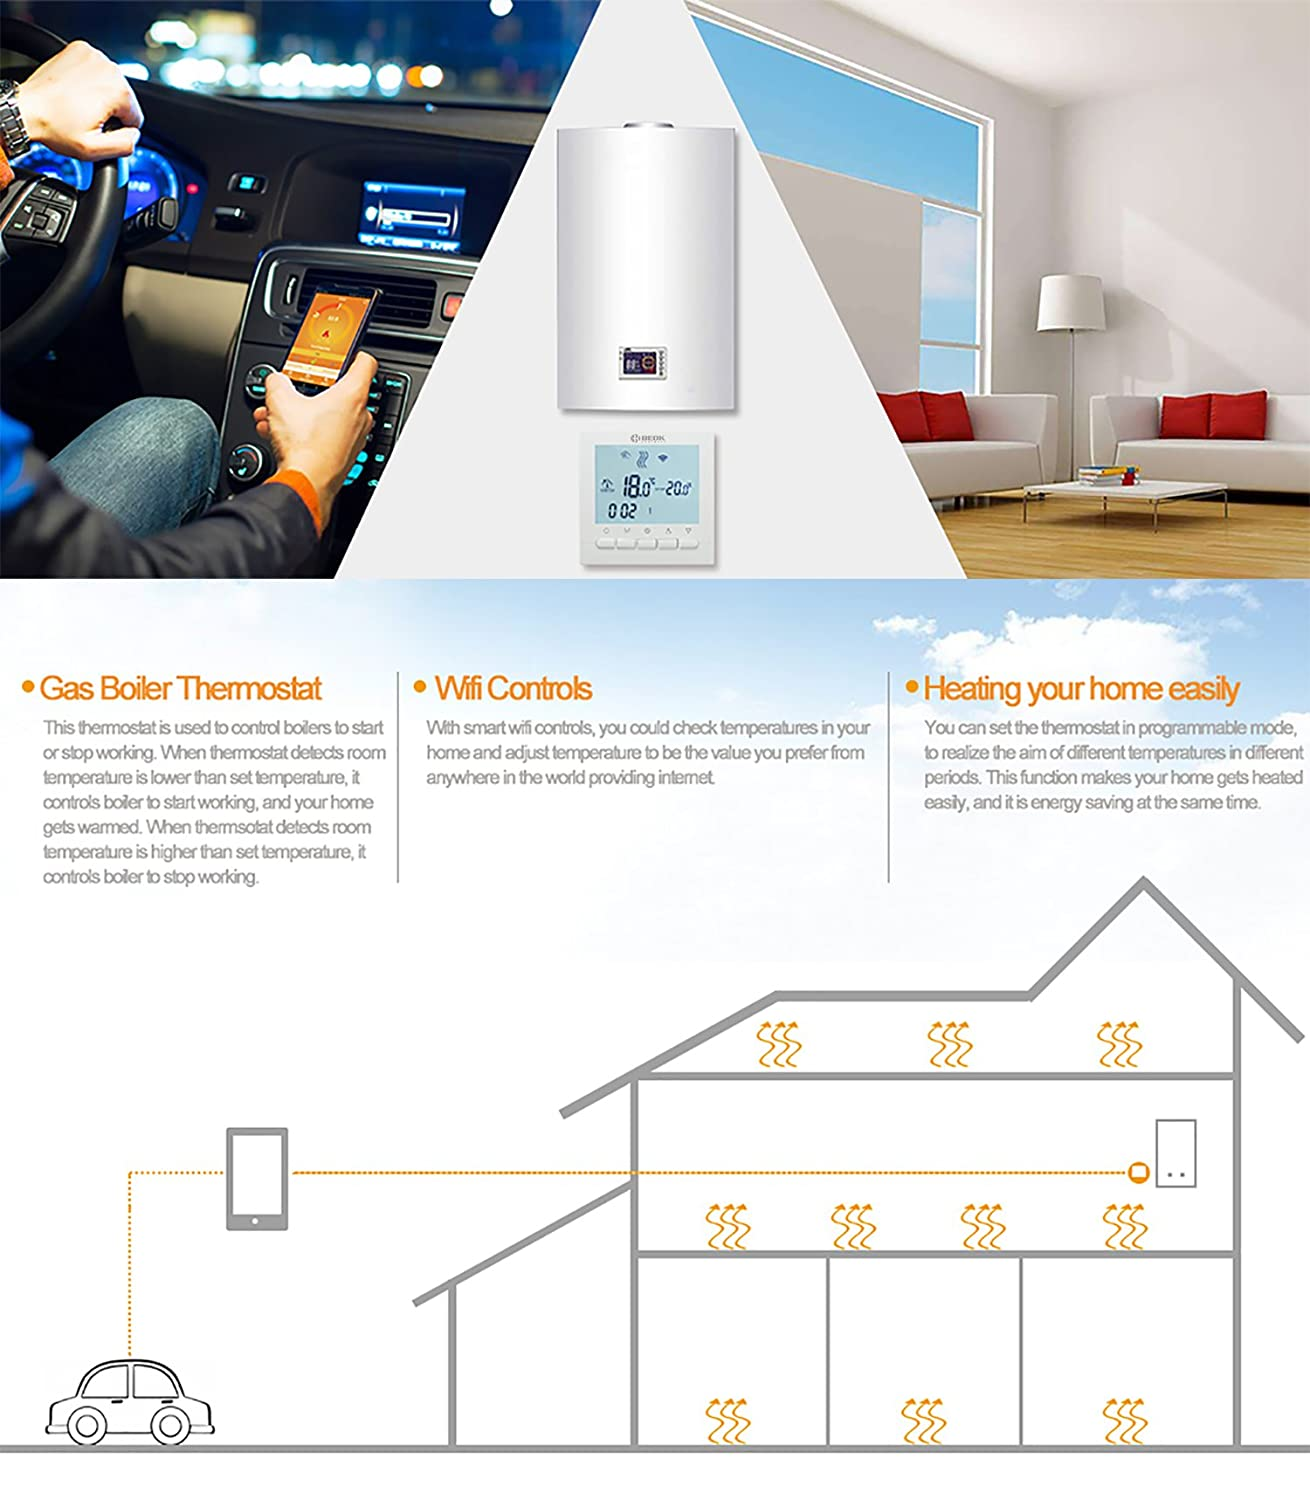 Beok Thermostat Bot 313 Wifi Gas Boiler Programmable Lcd Wiring Diagram Besides Honeywell Room Temperature Controller Free App Remote Online Control By Smartphone Ac220v 3a